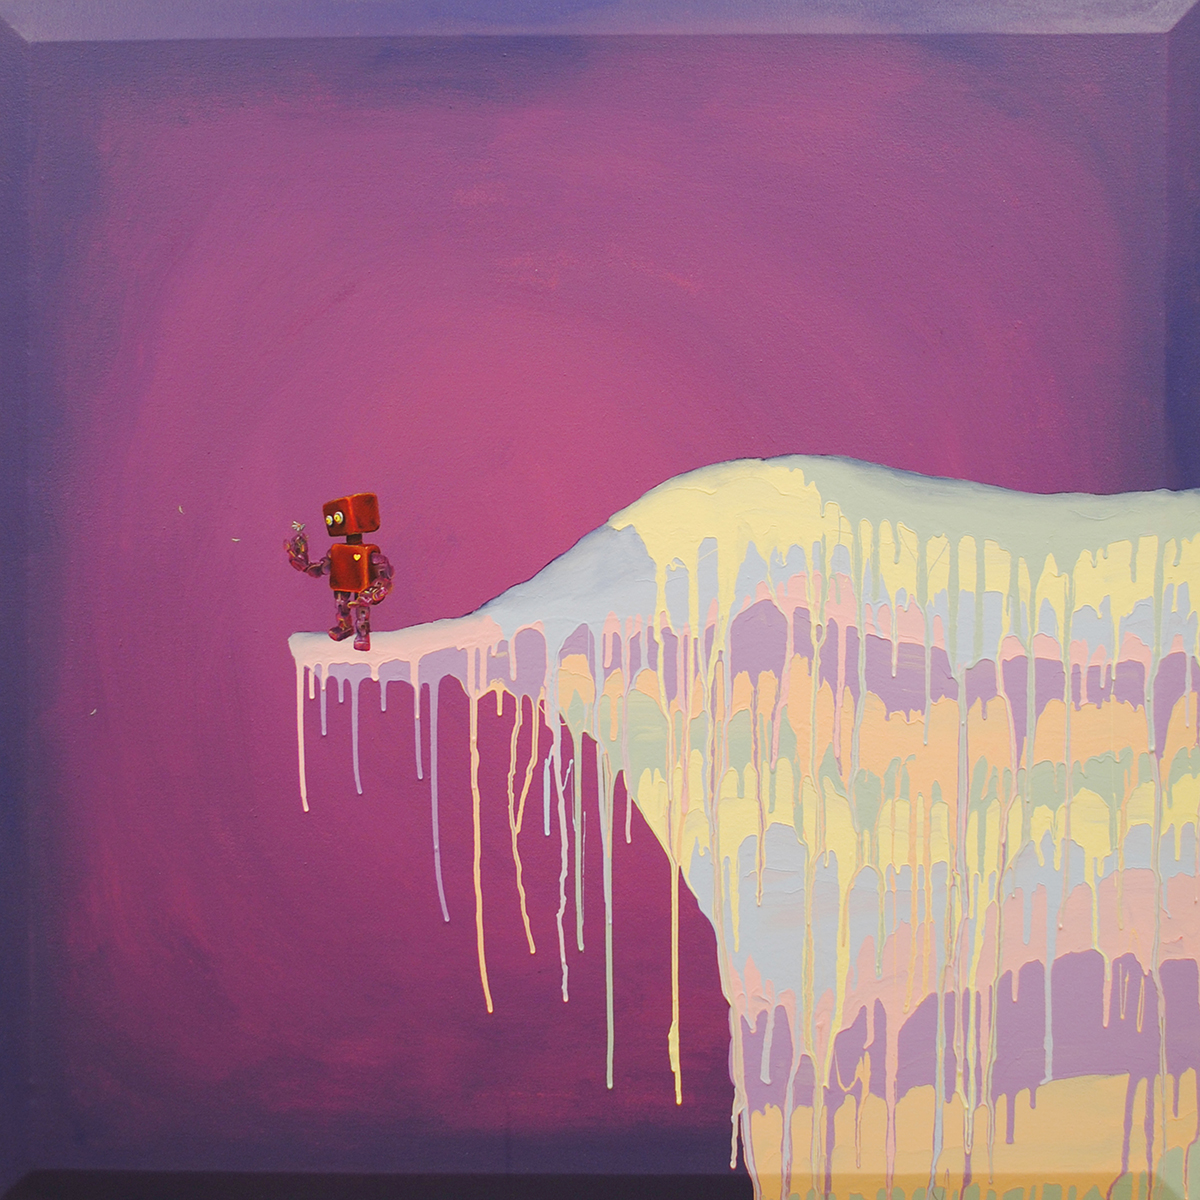 A painting of a toy on a cliff holding a bird.